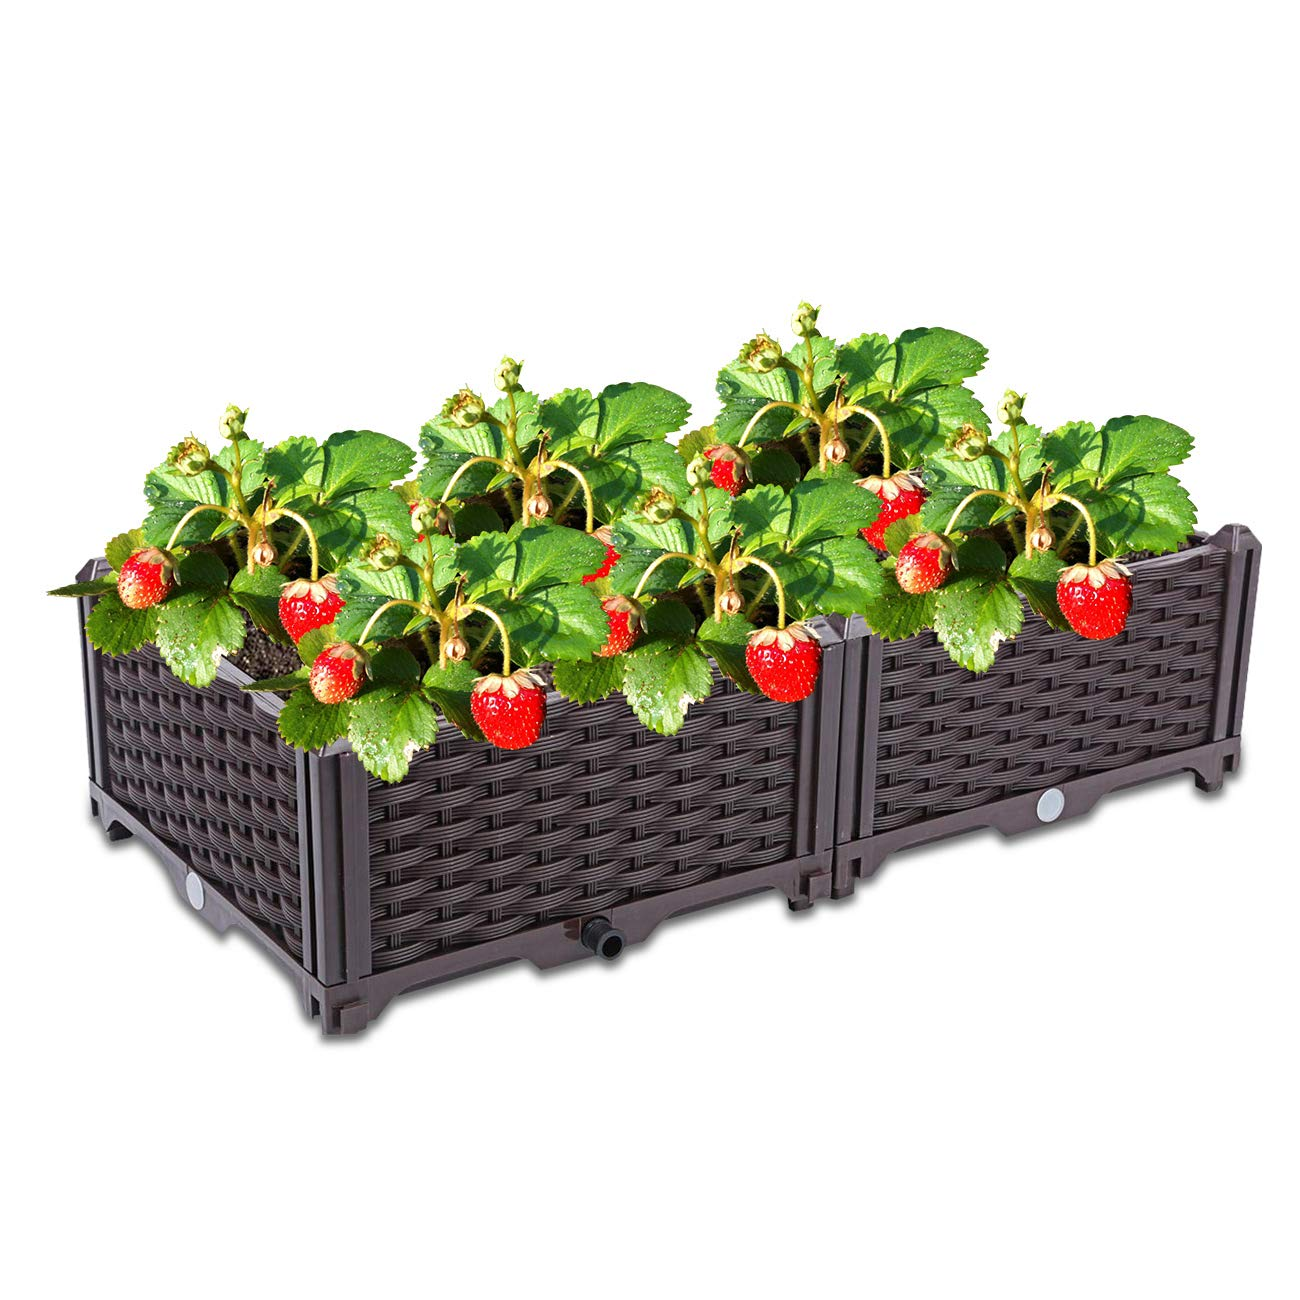 Dyna-Living Raised Garden Bed Plastic Planter Raised Bed Kit for Flower Vegetable Grow Indoor Outdoor Patio Backyard Porch Home Garden Decoration Gift